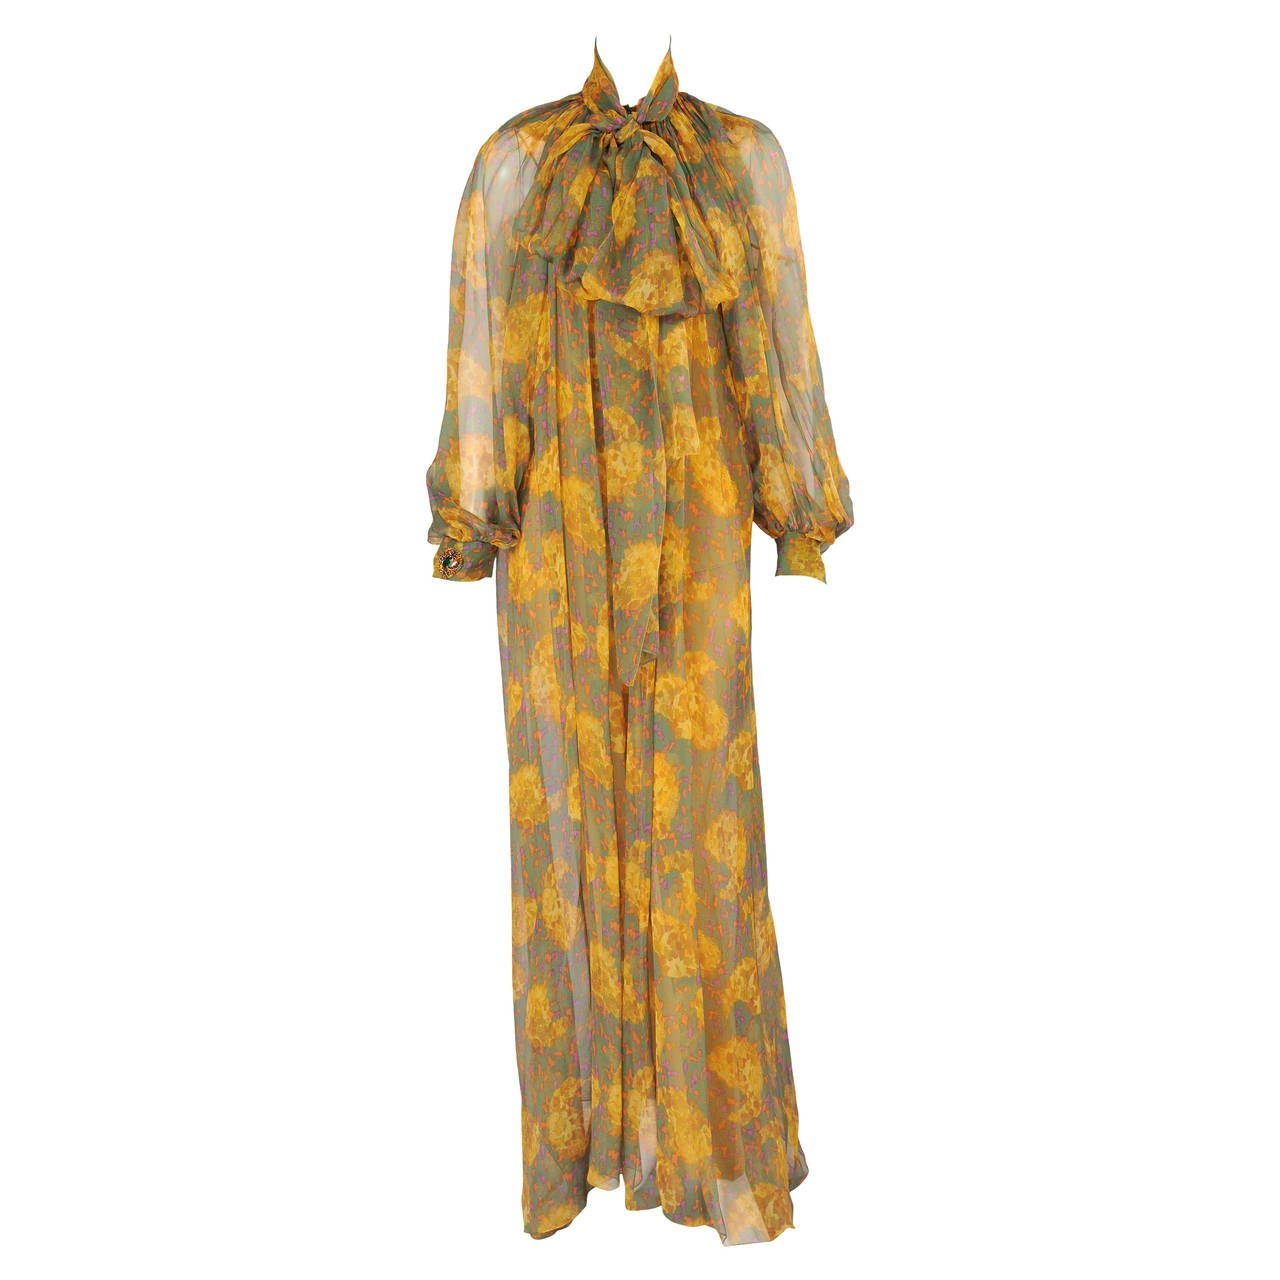 Givenchy Haute Couture Paisley Printed Silk Chiffon Coat with Camisole and Pants